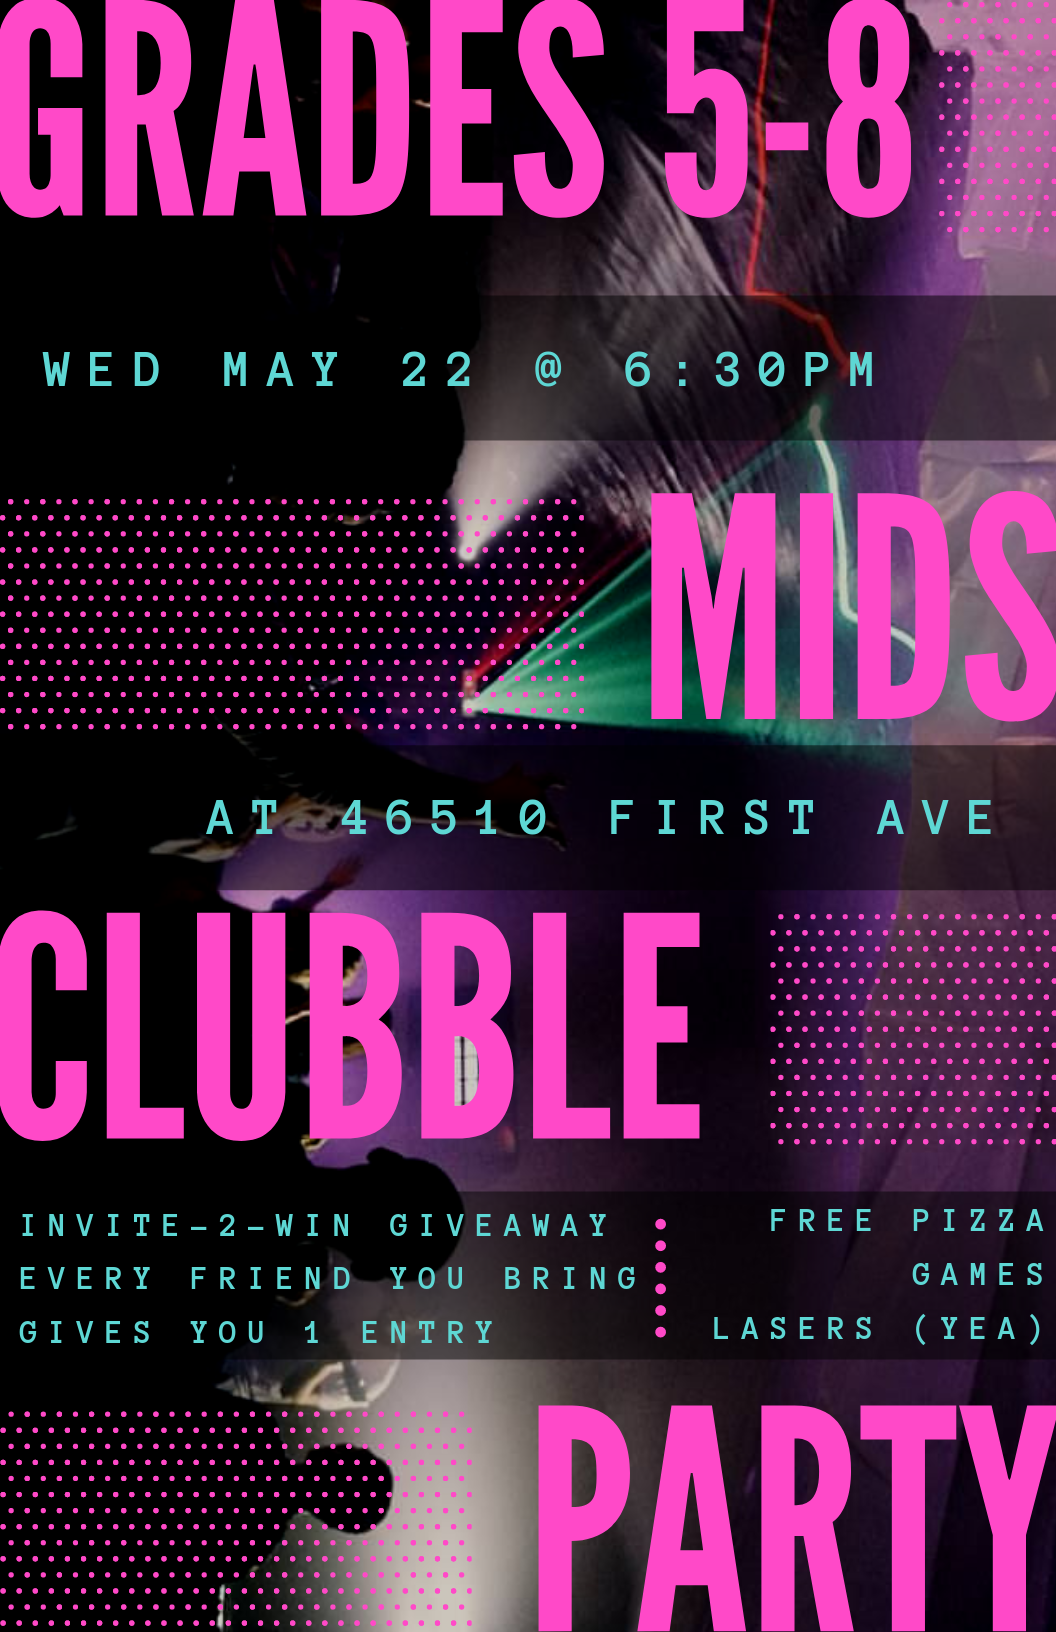 AXIS MIDS — First Ave Church